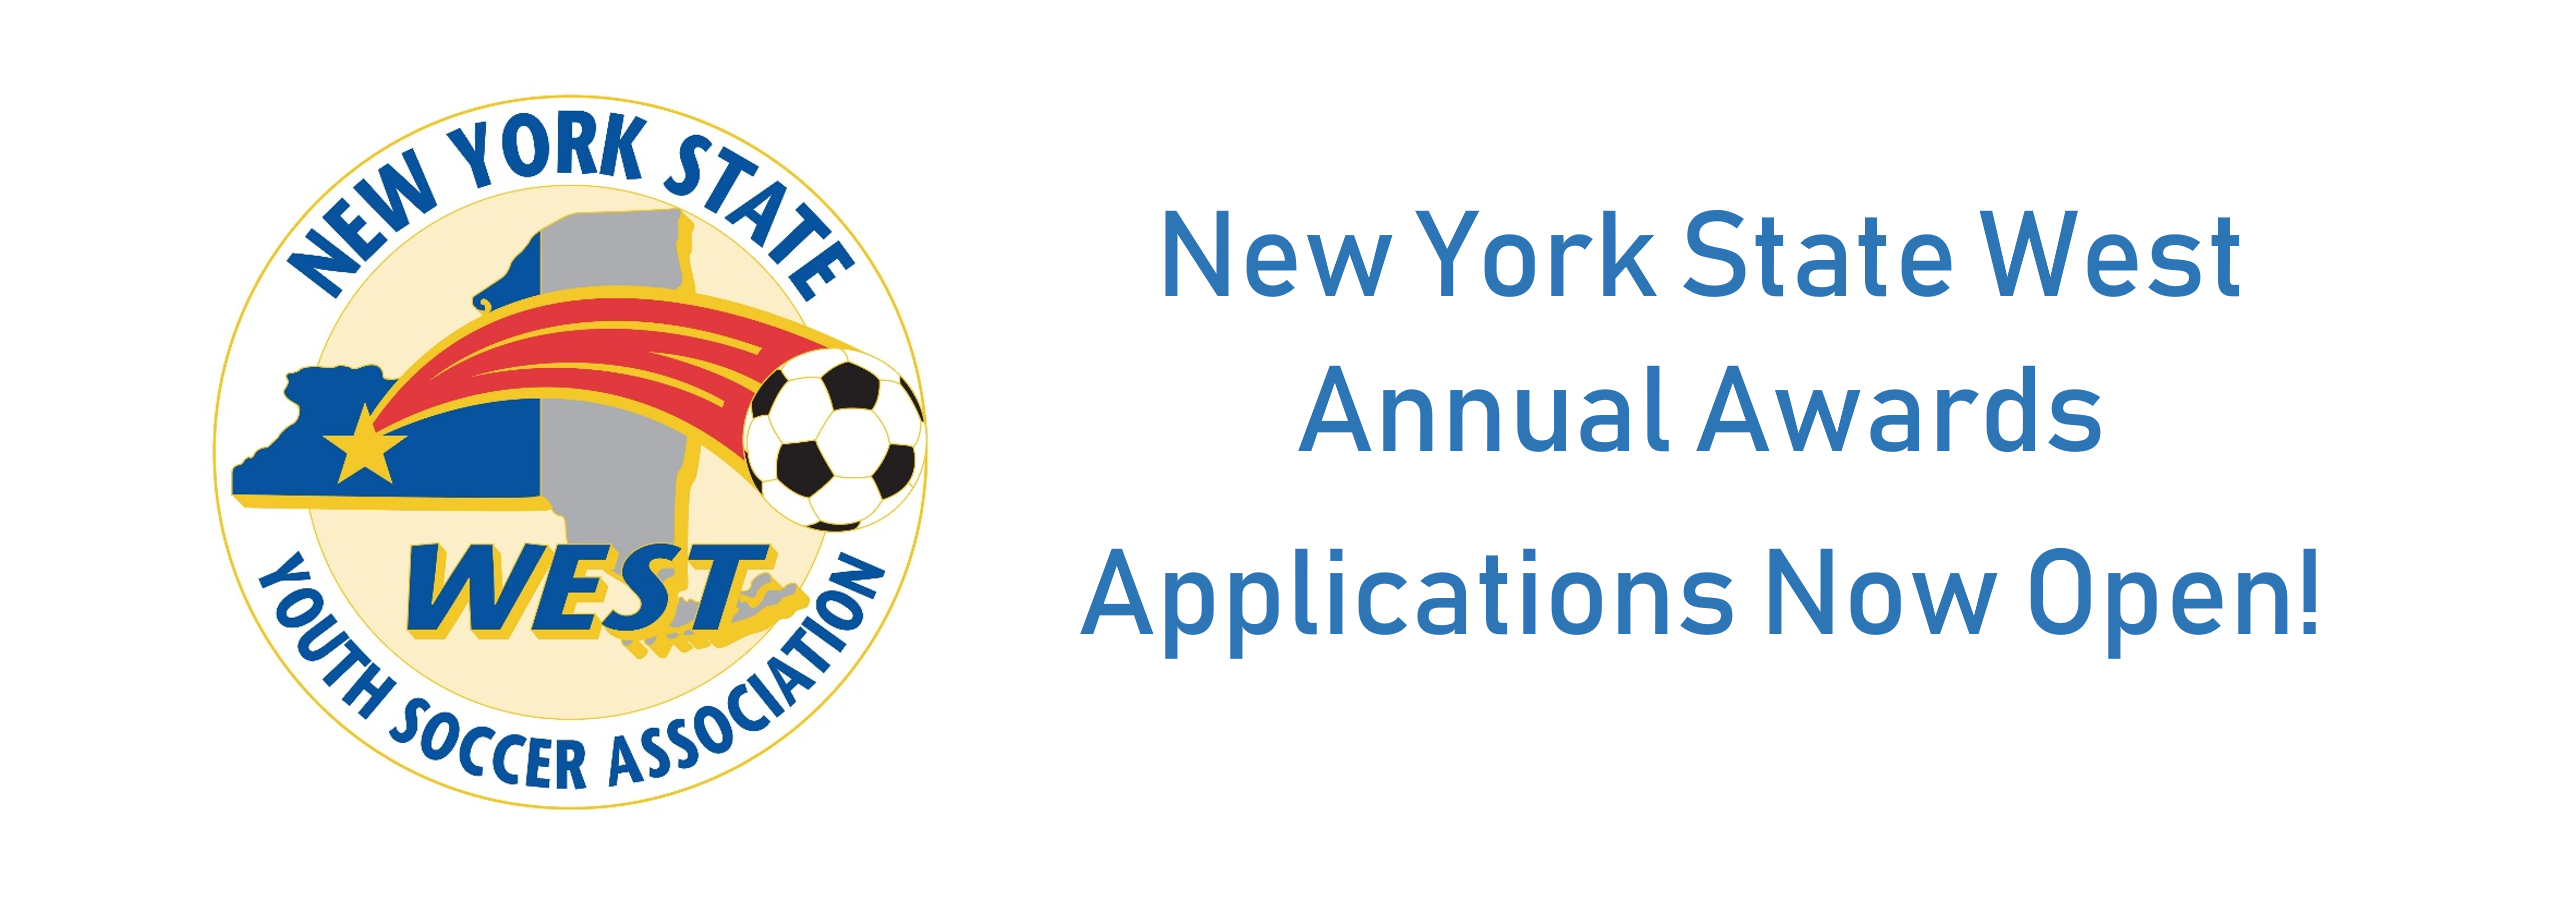 2021 NYSW Annual Awards - Applications Now Open!